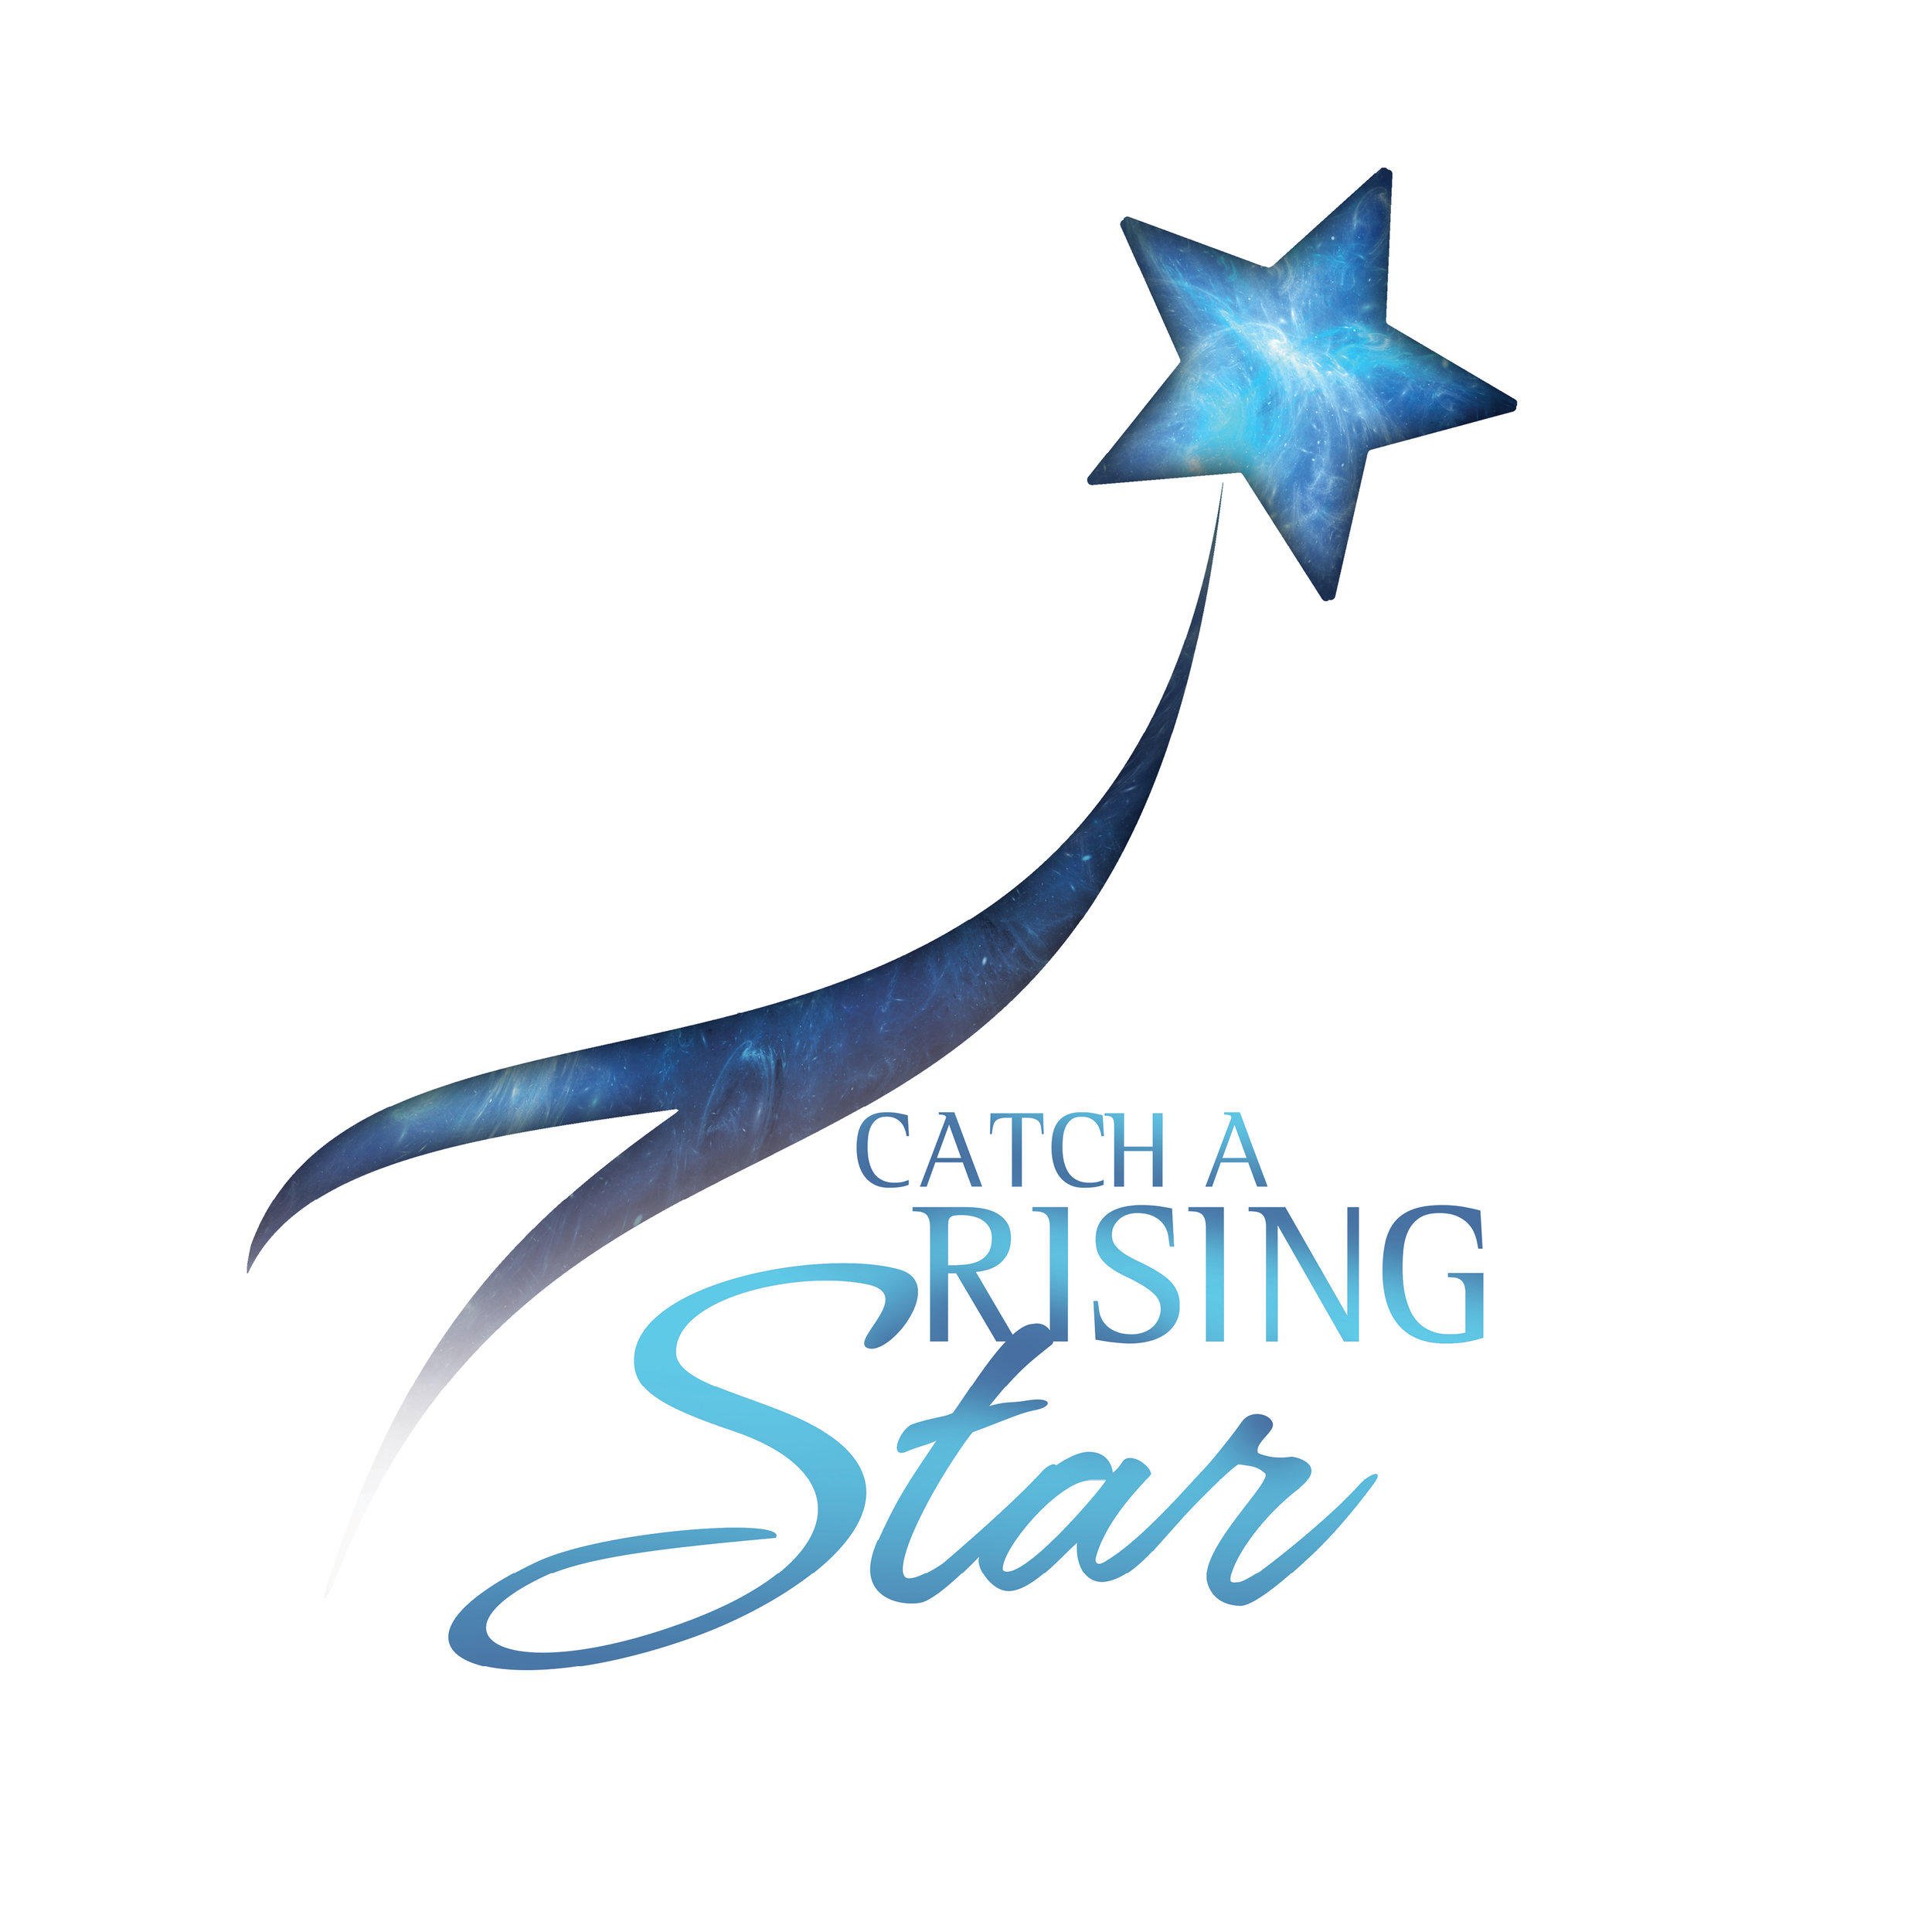 Catch a Rising Star | October 29, 2016 | 2:30 P.M. | Brock Recital Hall, Samford University